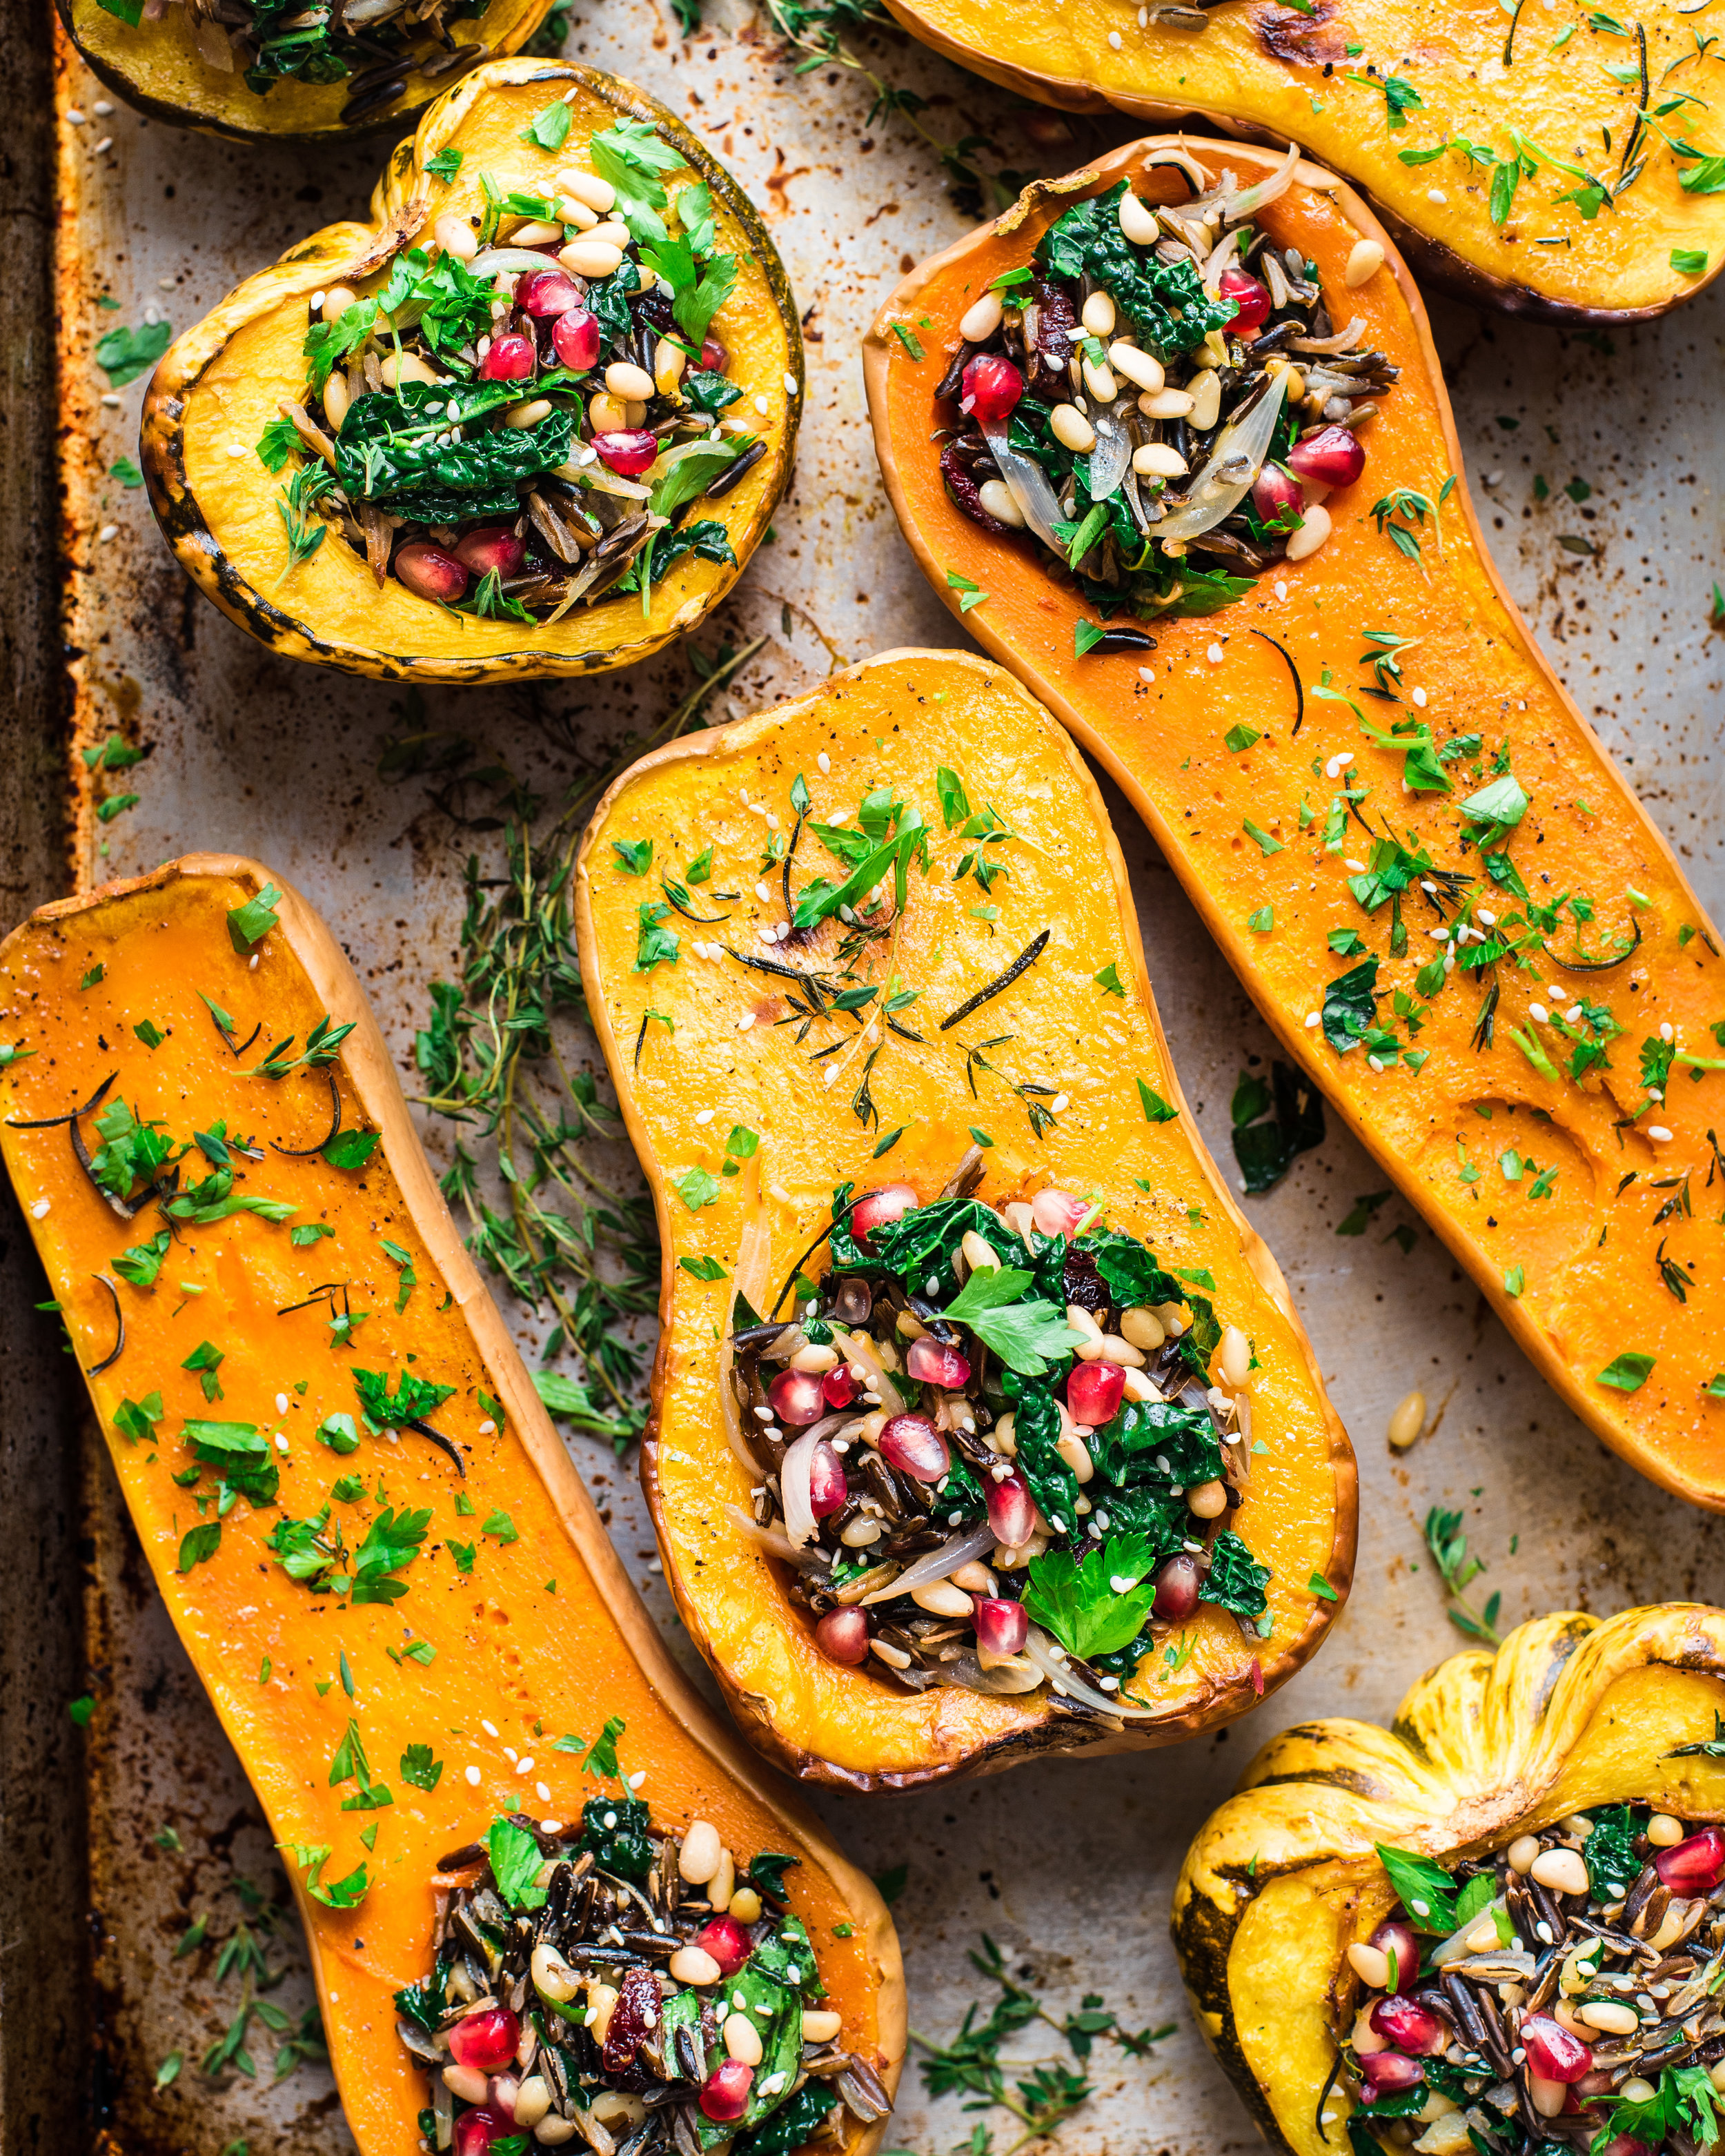 Vegan Wild Rice Stuffed Squash